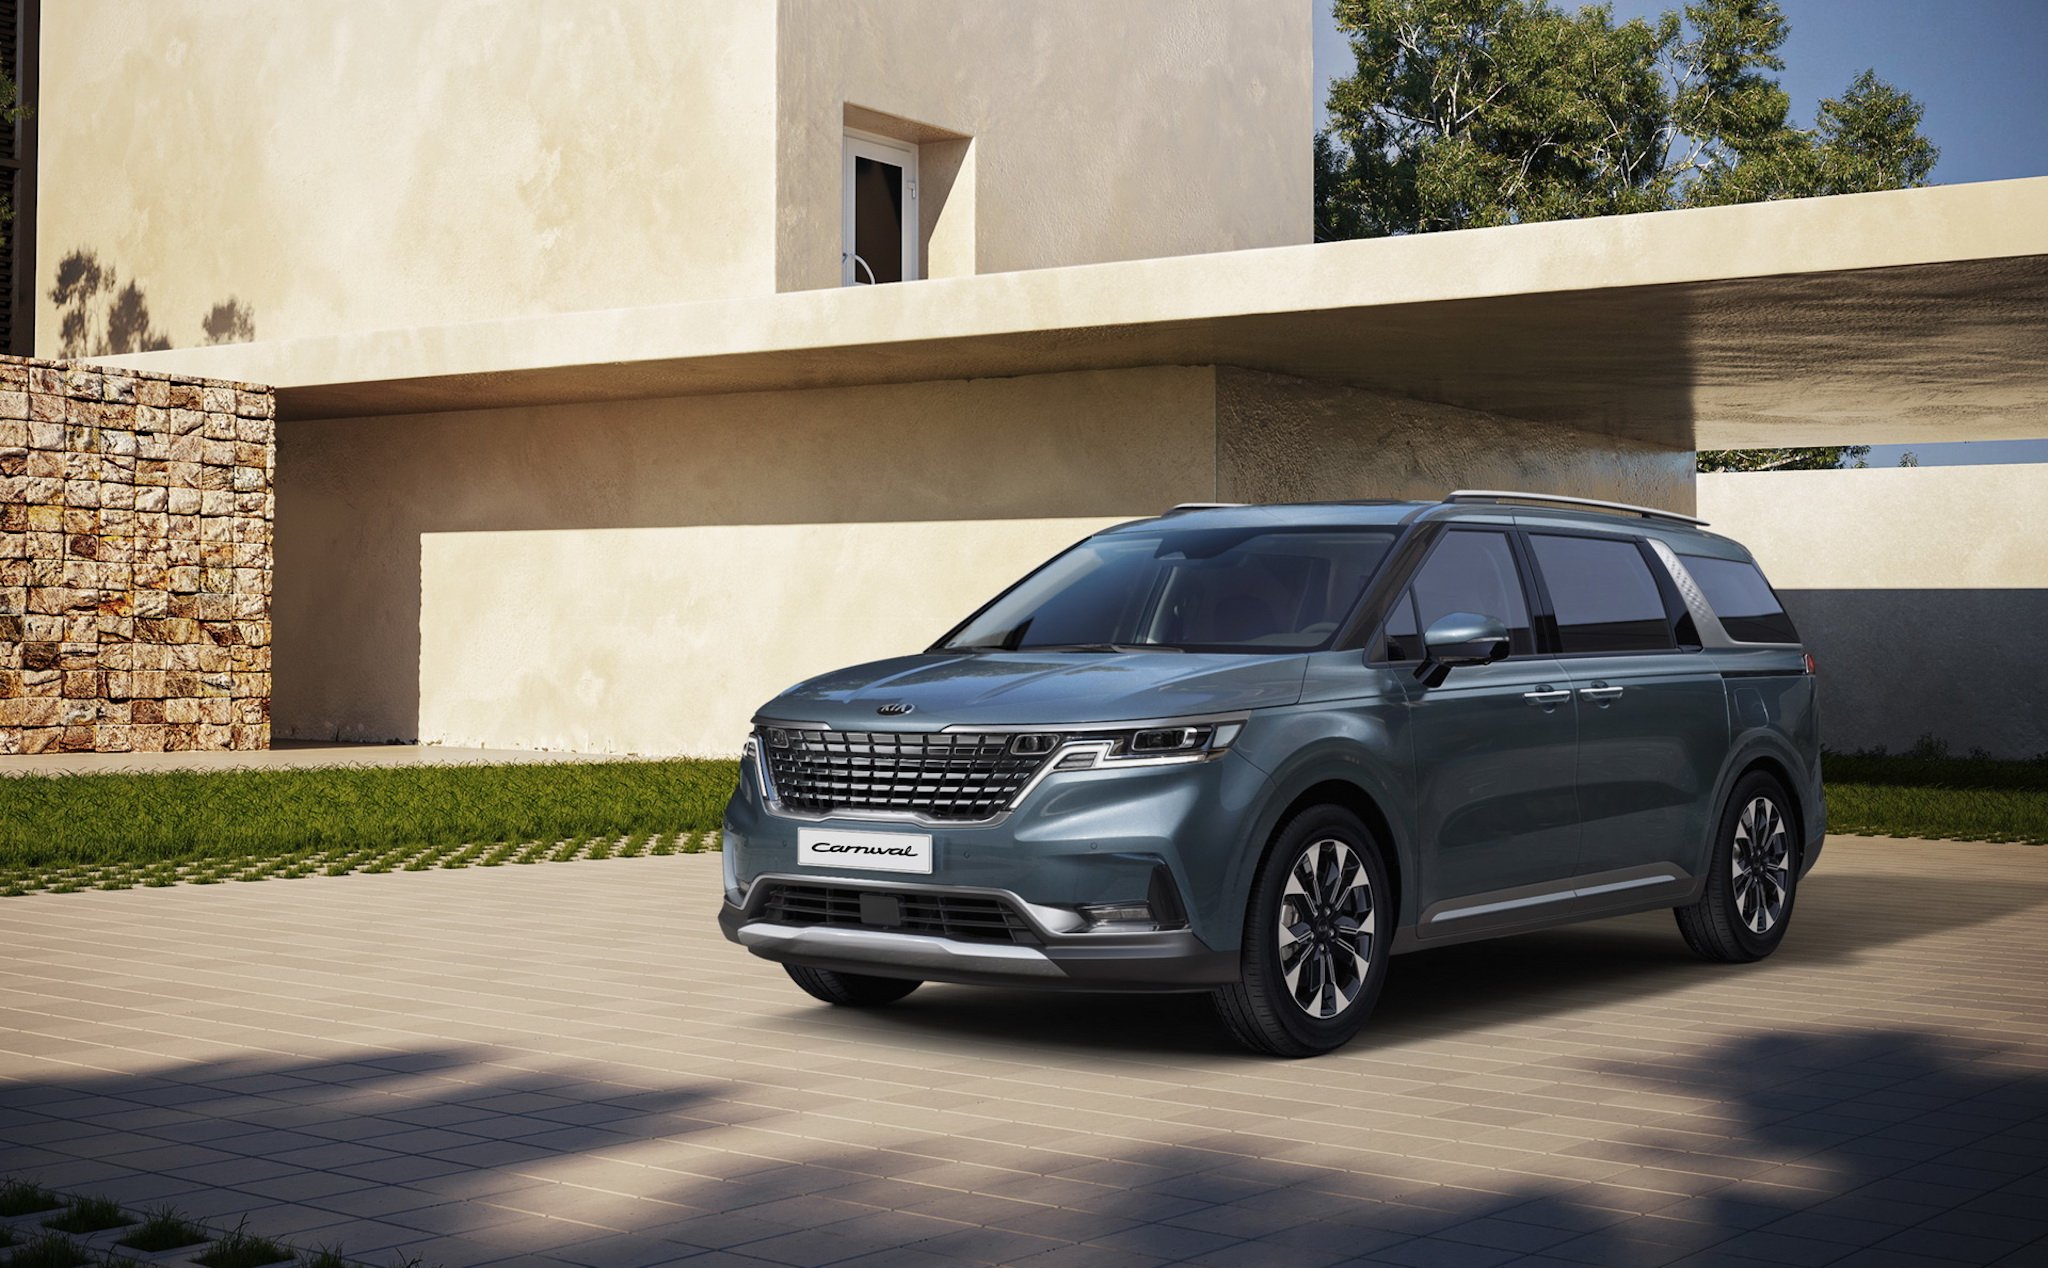 Preview the hot duo of Kia Sedona 2021 and Kia Sonet 2021 coming to Vietnamese guests: Promises to create fever